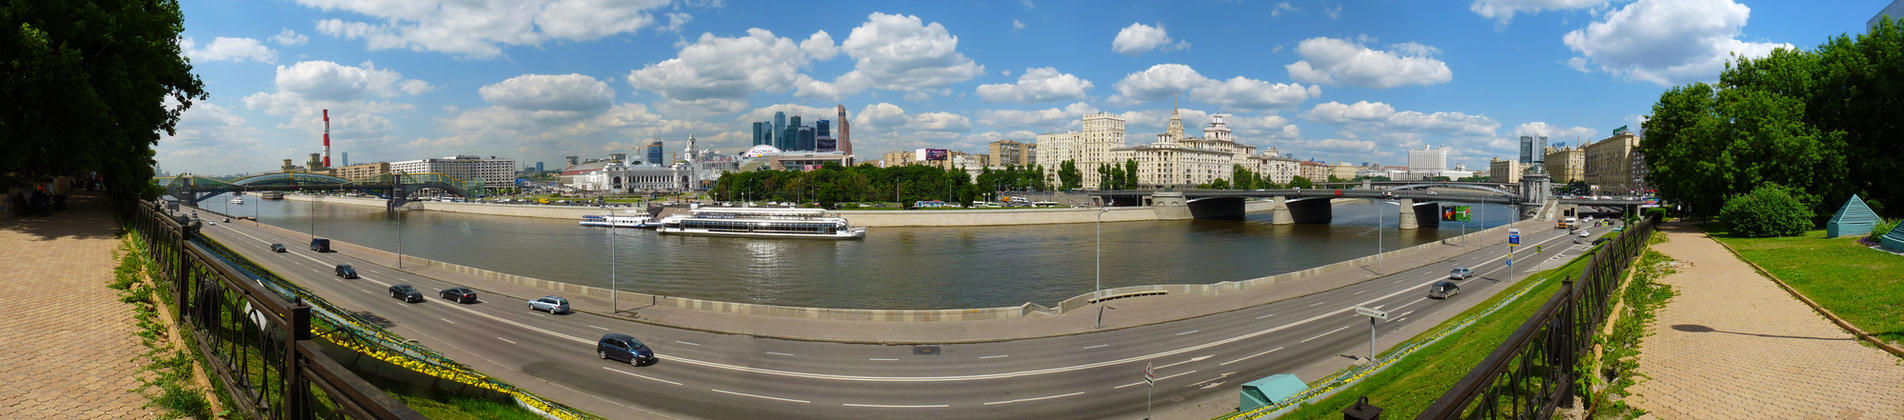 Moscow in Summer by EldarZakirov